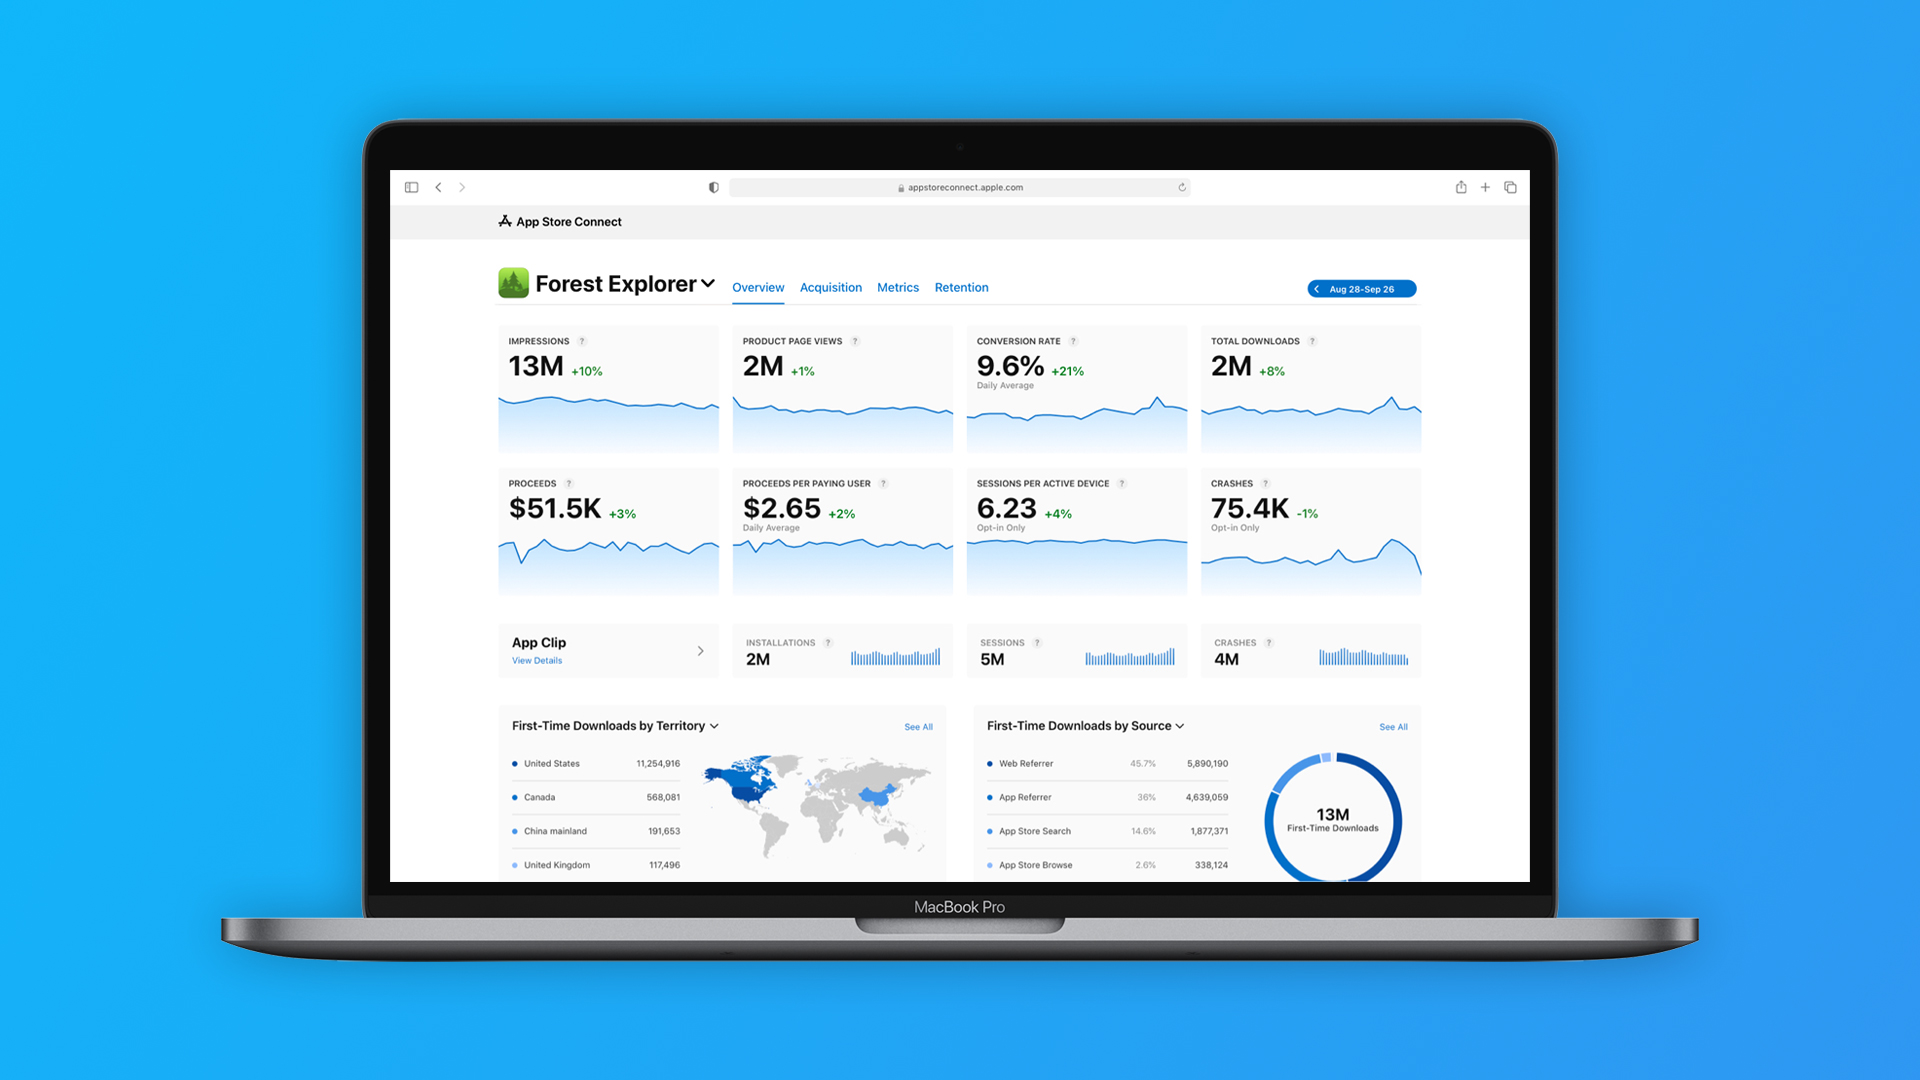 App Store Connect updated with new transaction metrics in App Analytics